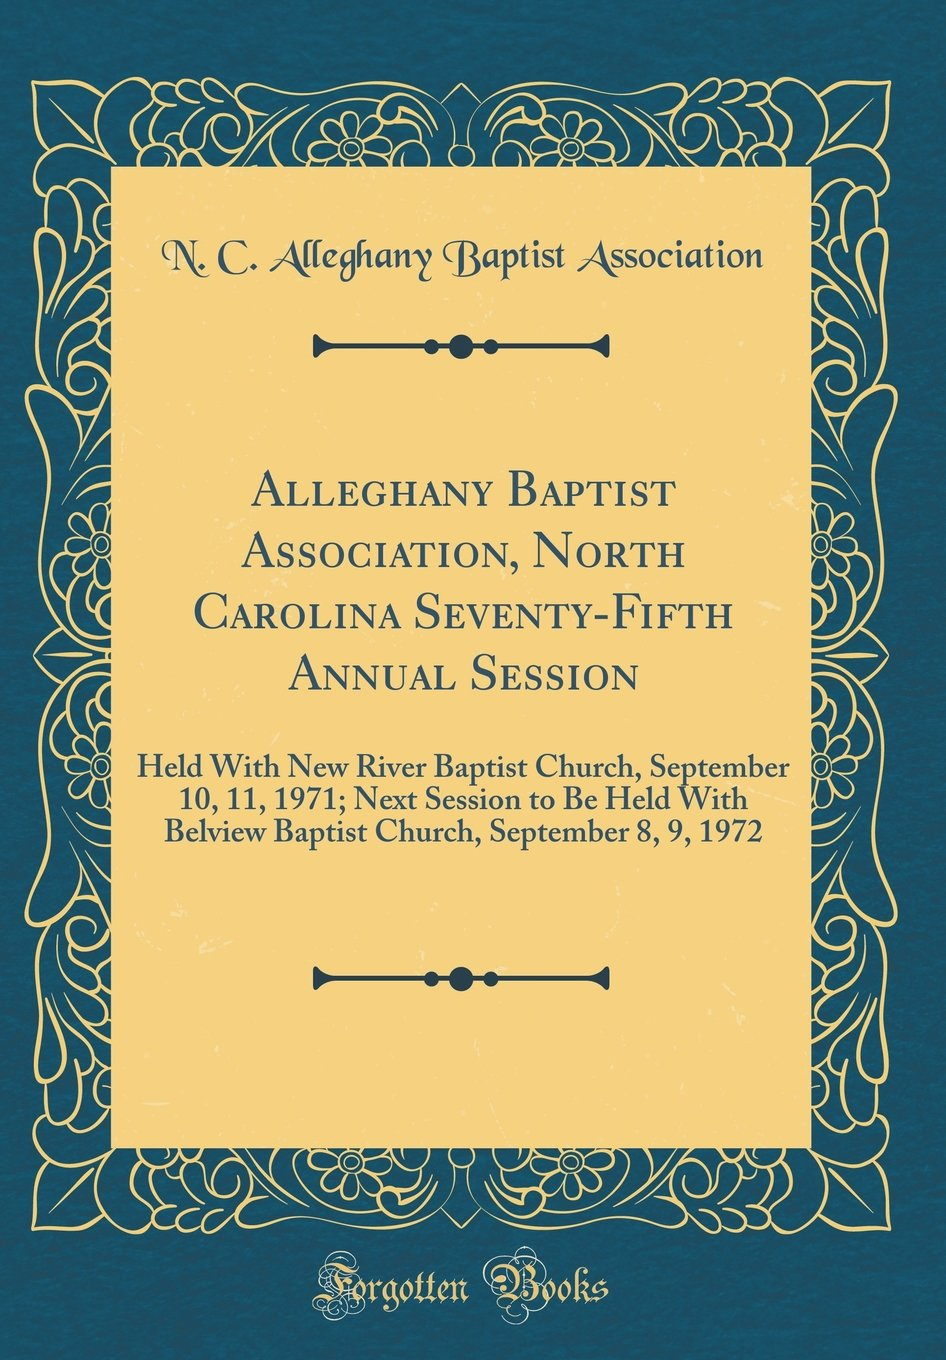 Alleghany Baptist Association, North Carolina Seventy-Fifth Annual Session: Held with New River Baptist Church, September 10, 11, 1971; Next Session ... September 8, 9, 1972 (Classic Reprint) pdf